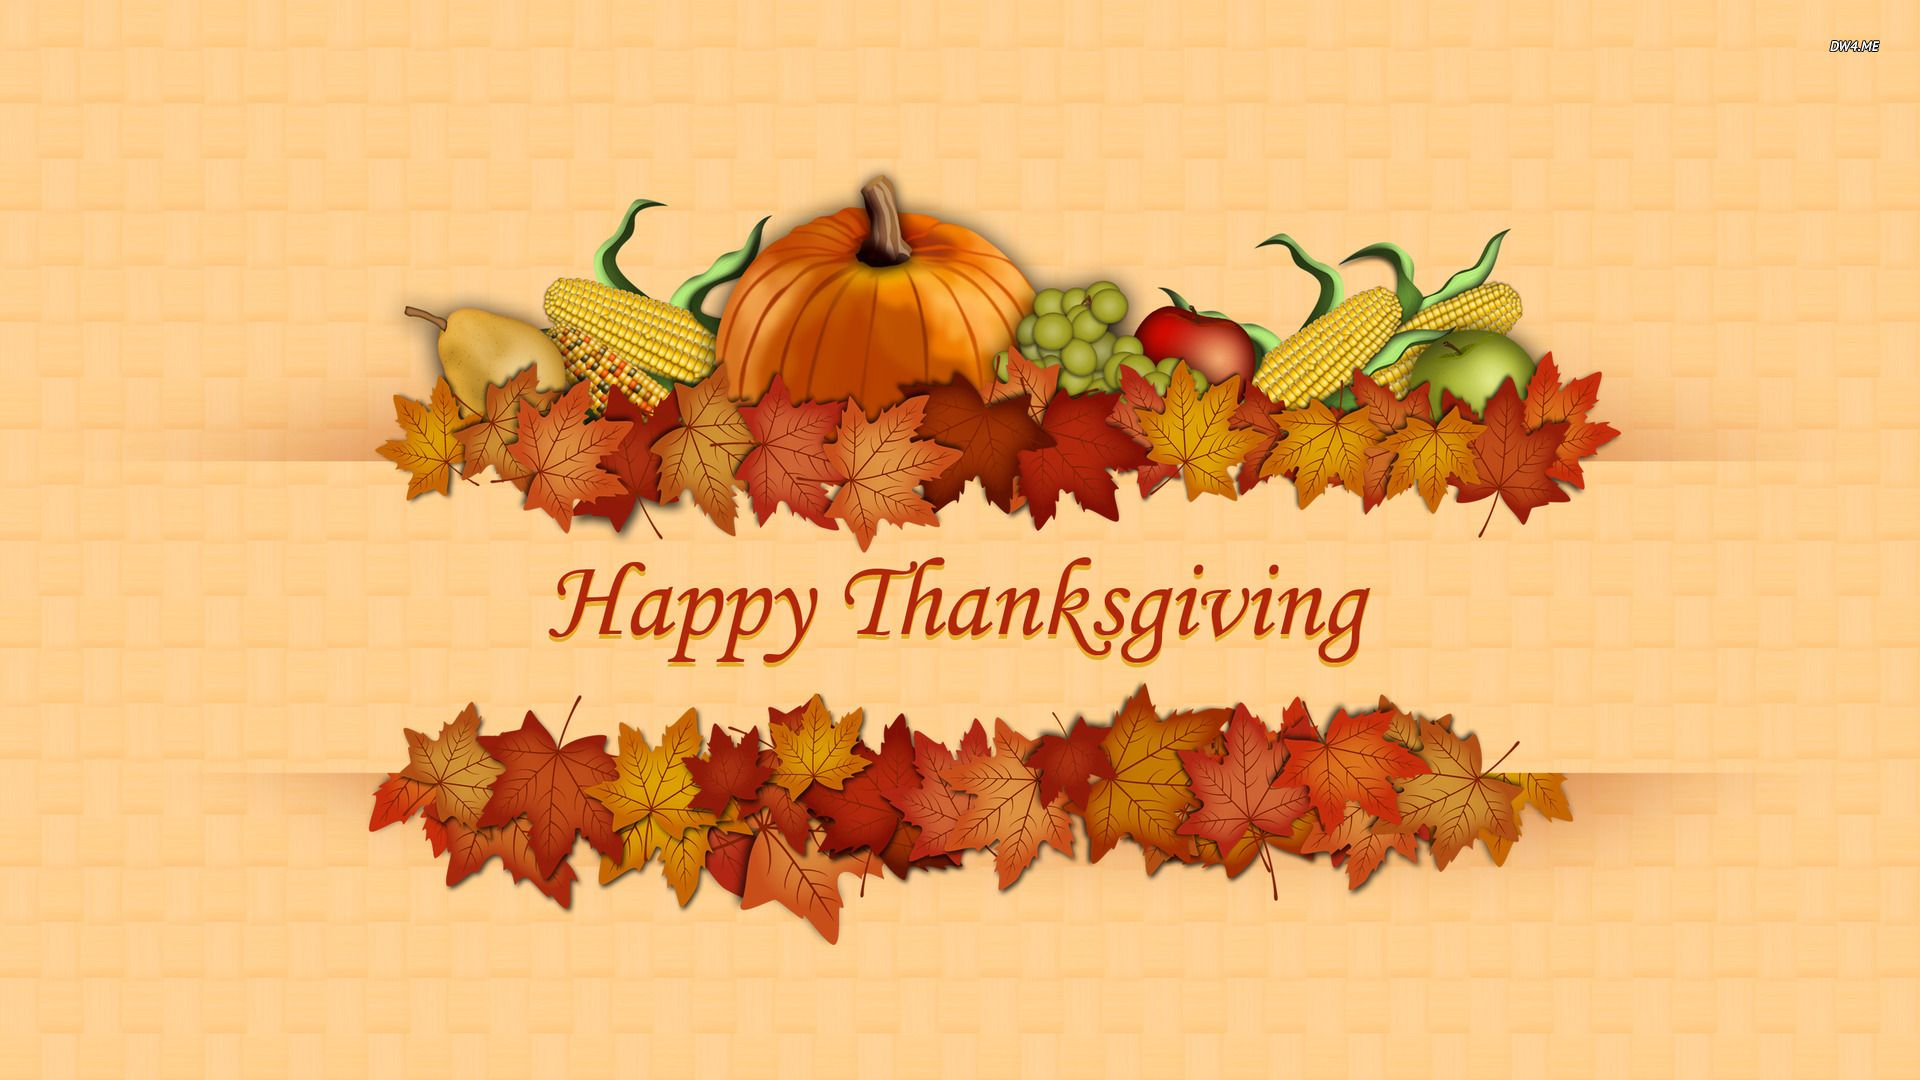 How To Make Thanksgiving Not About Food Trusted Therapy Inc Happy Thanksgiving Wallpaper Thanksgiving Images Free Thanksgiving Wallpaper